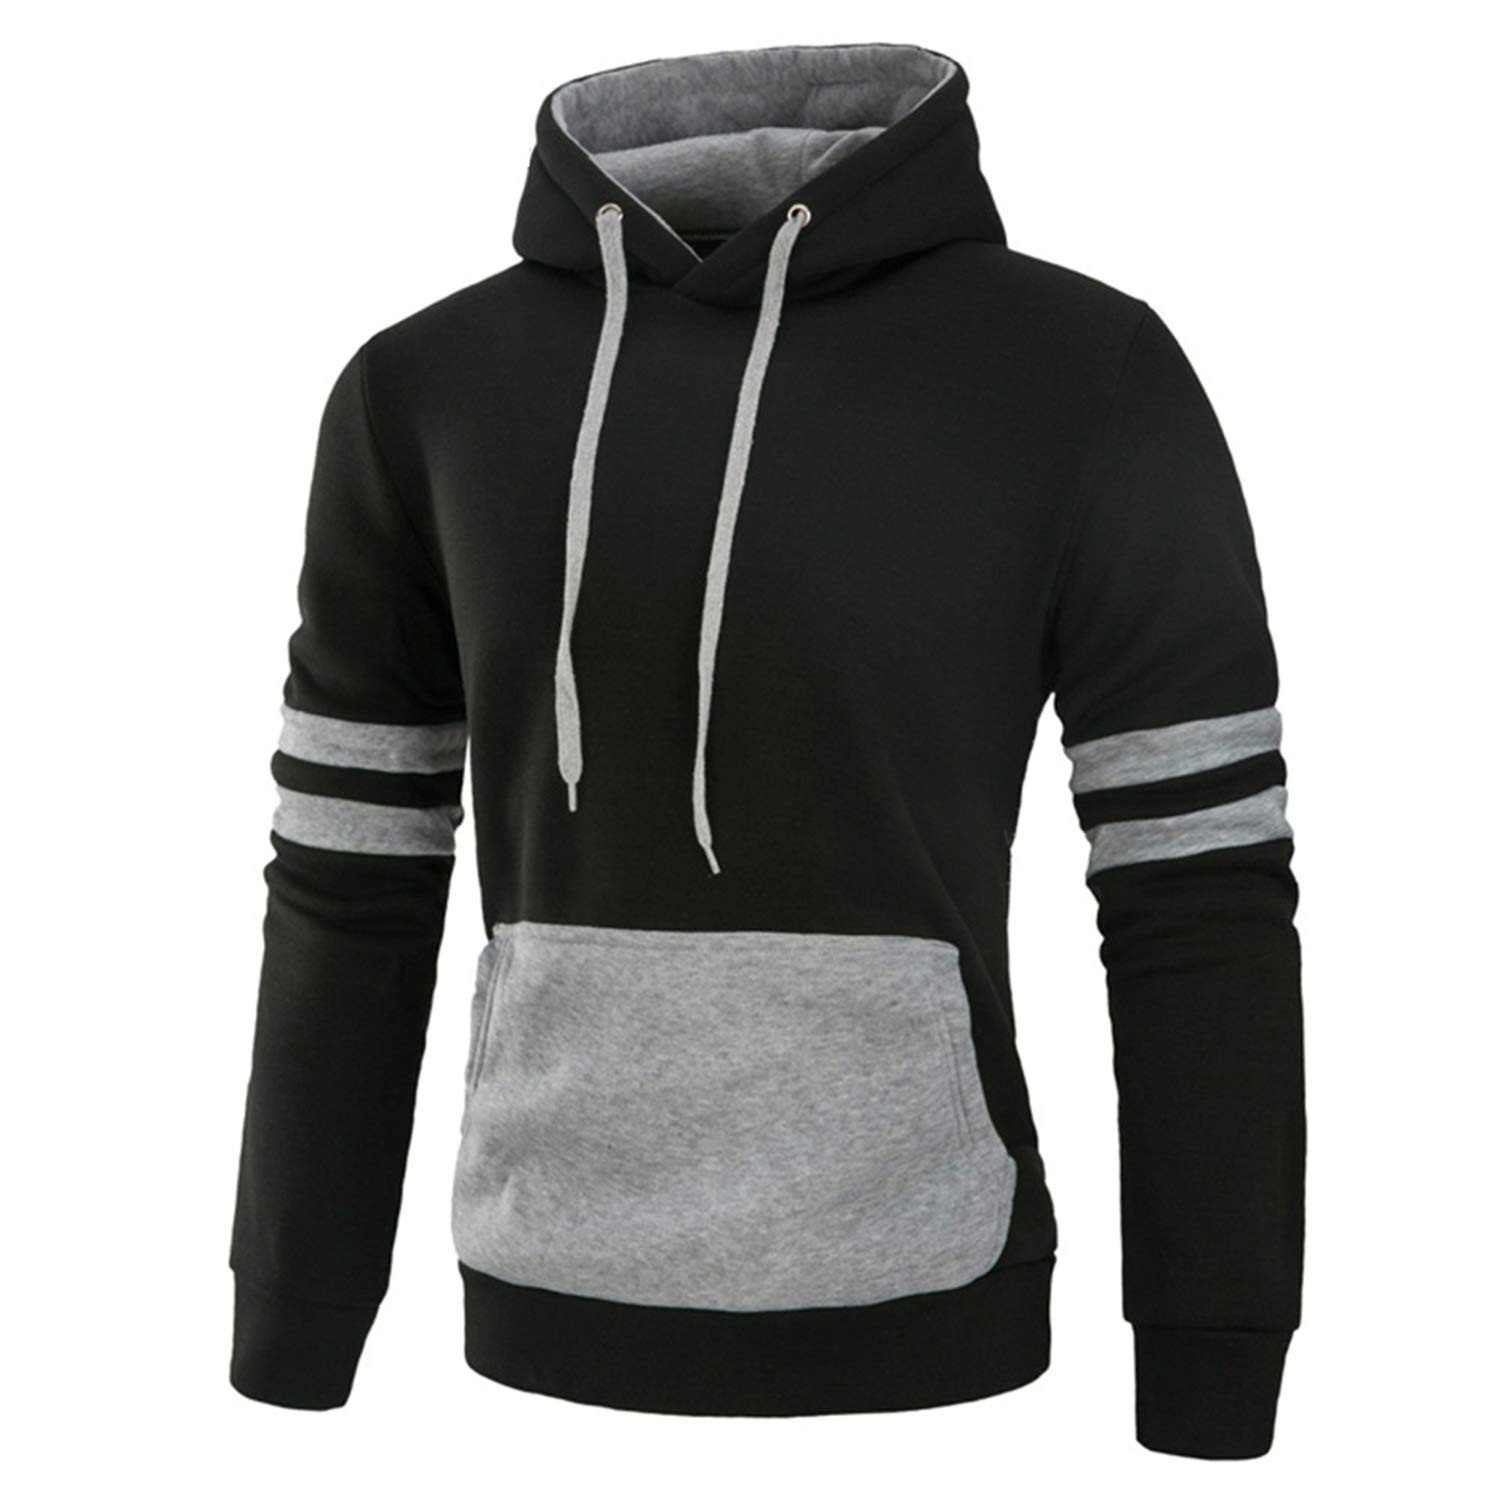 Hoodies Men Long Sleeve Warm Hooded Jacket Pullover Outwear Tops Sweatshirt